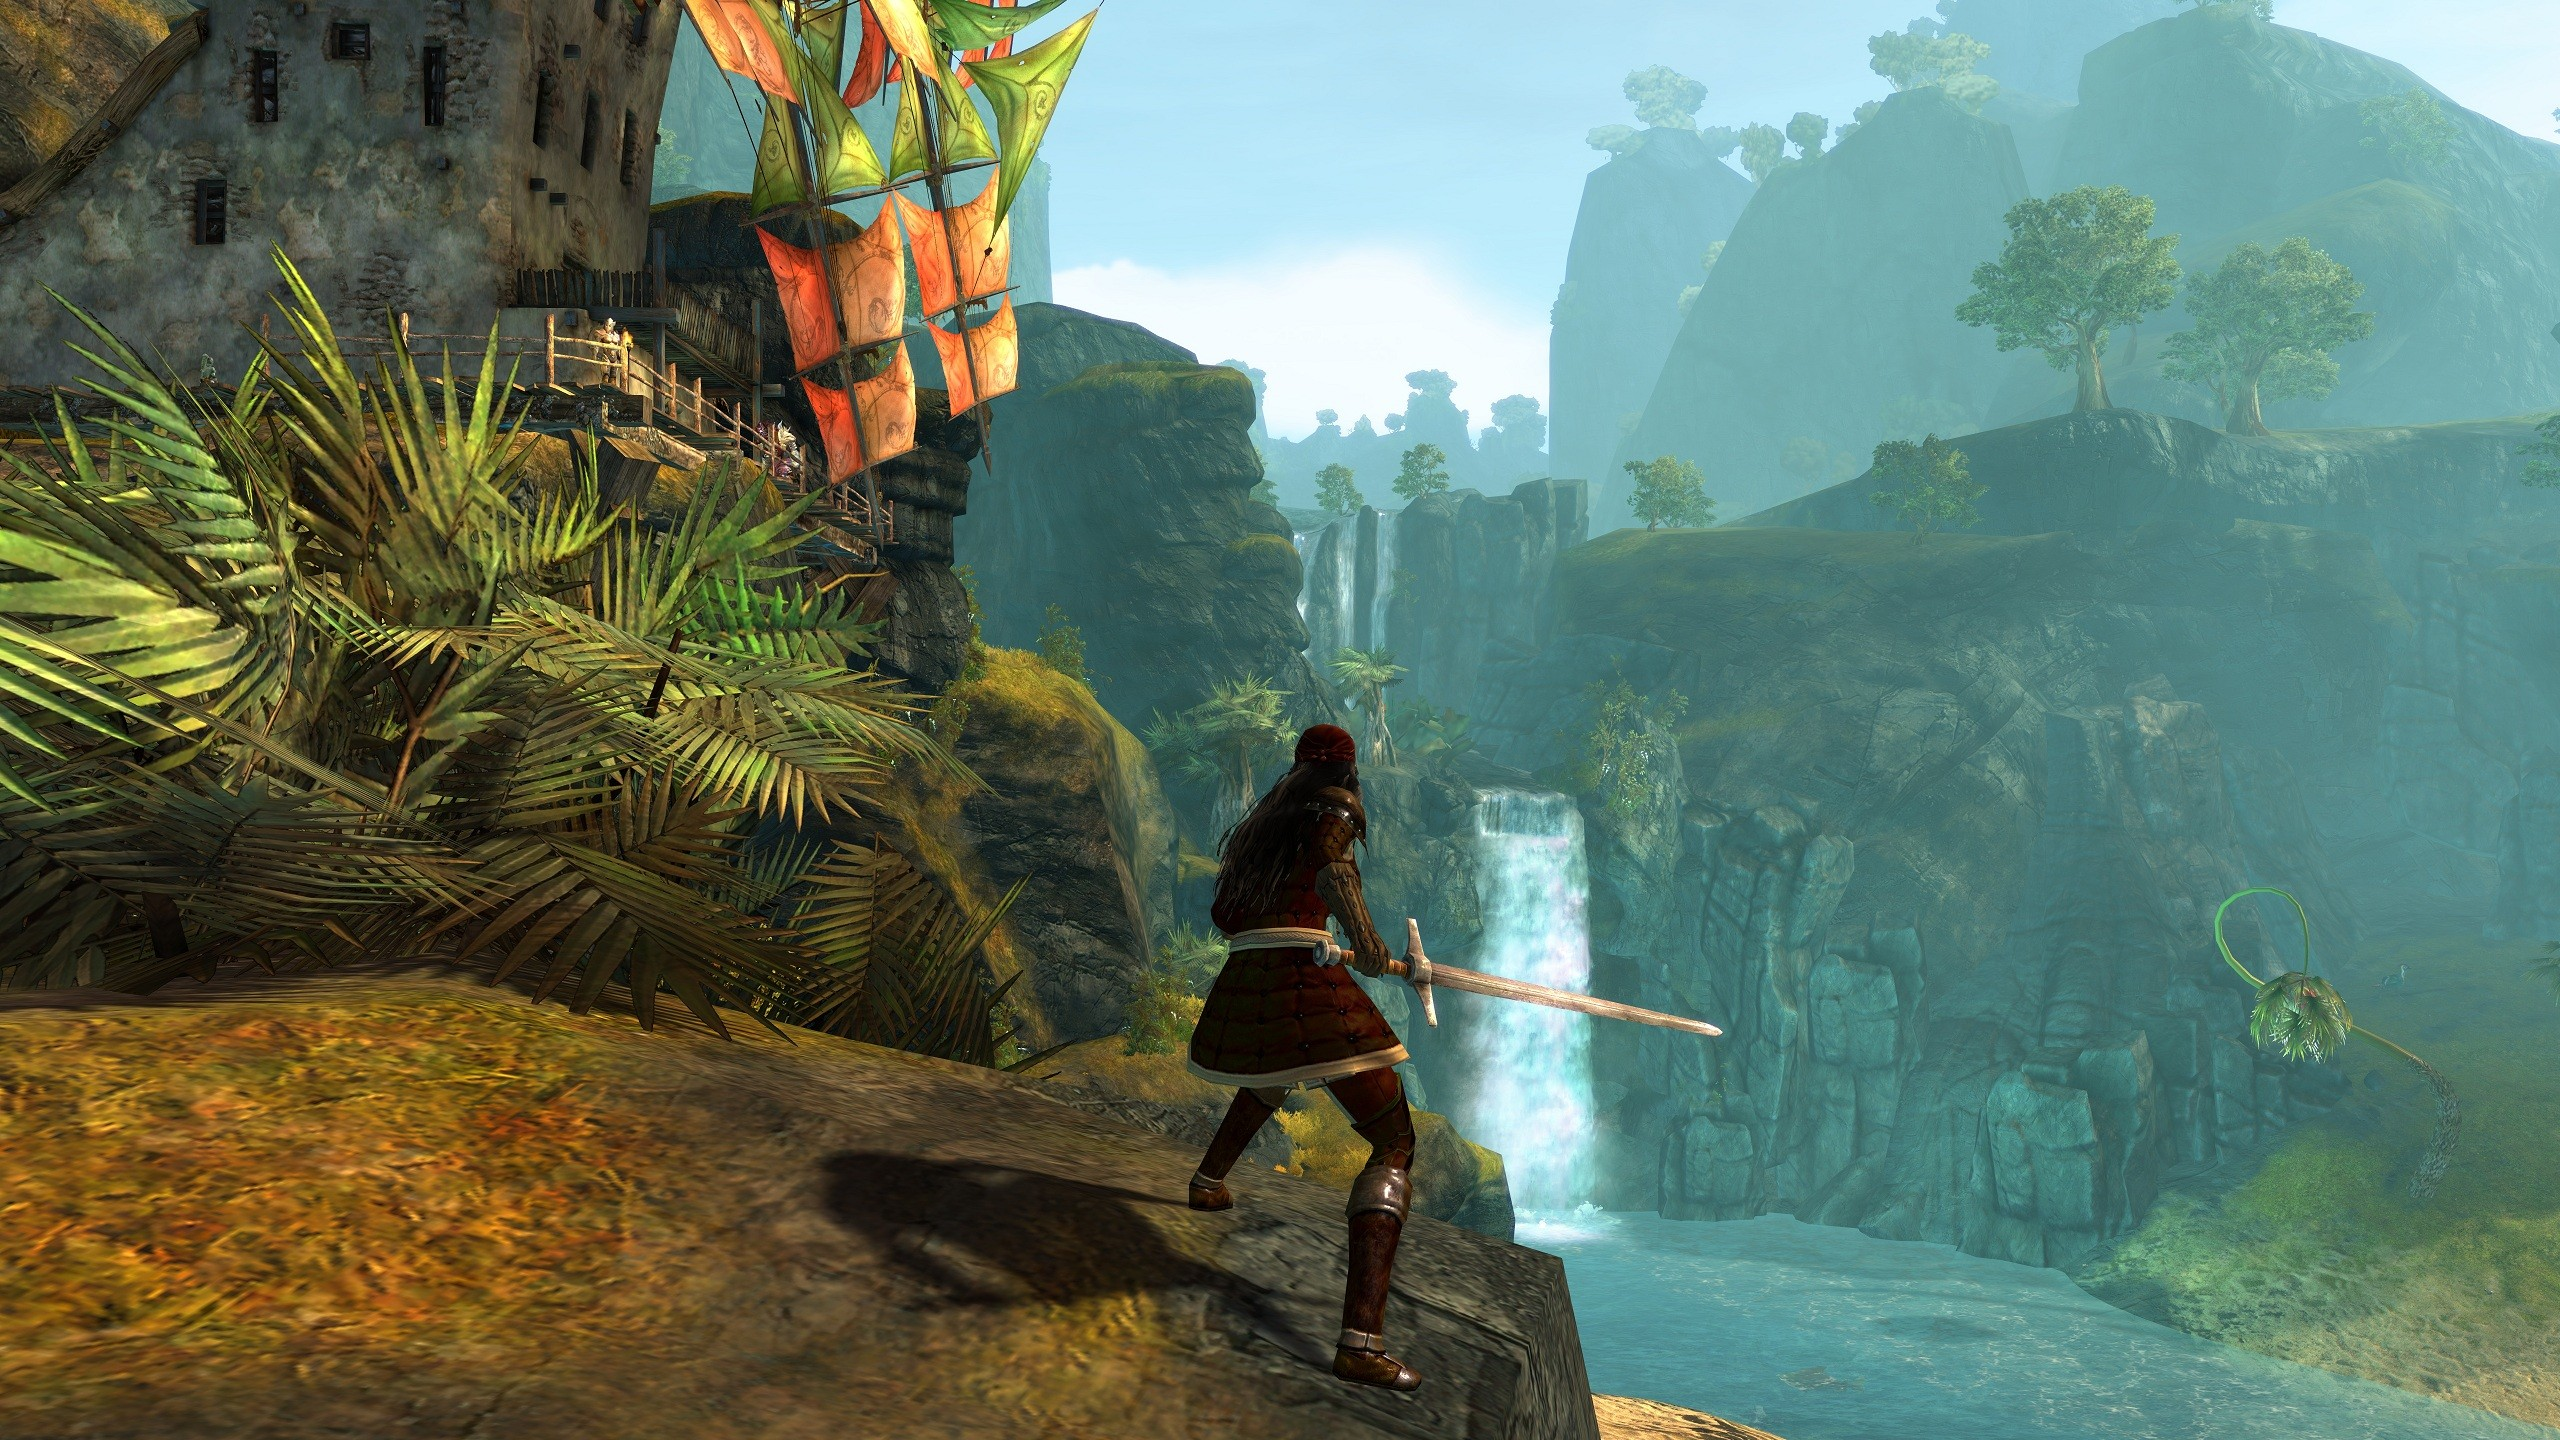 Guild Wars 2 - GW2 Max Settings Lion's Arch waterfall